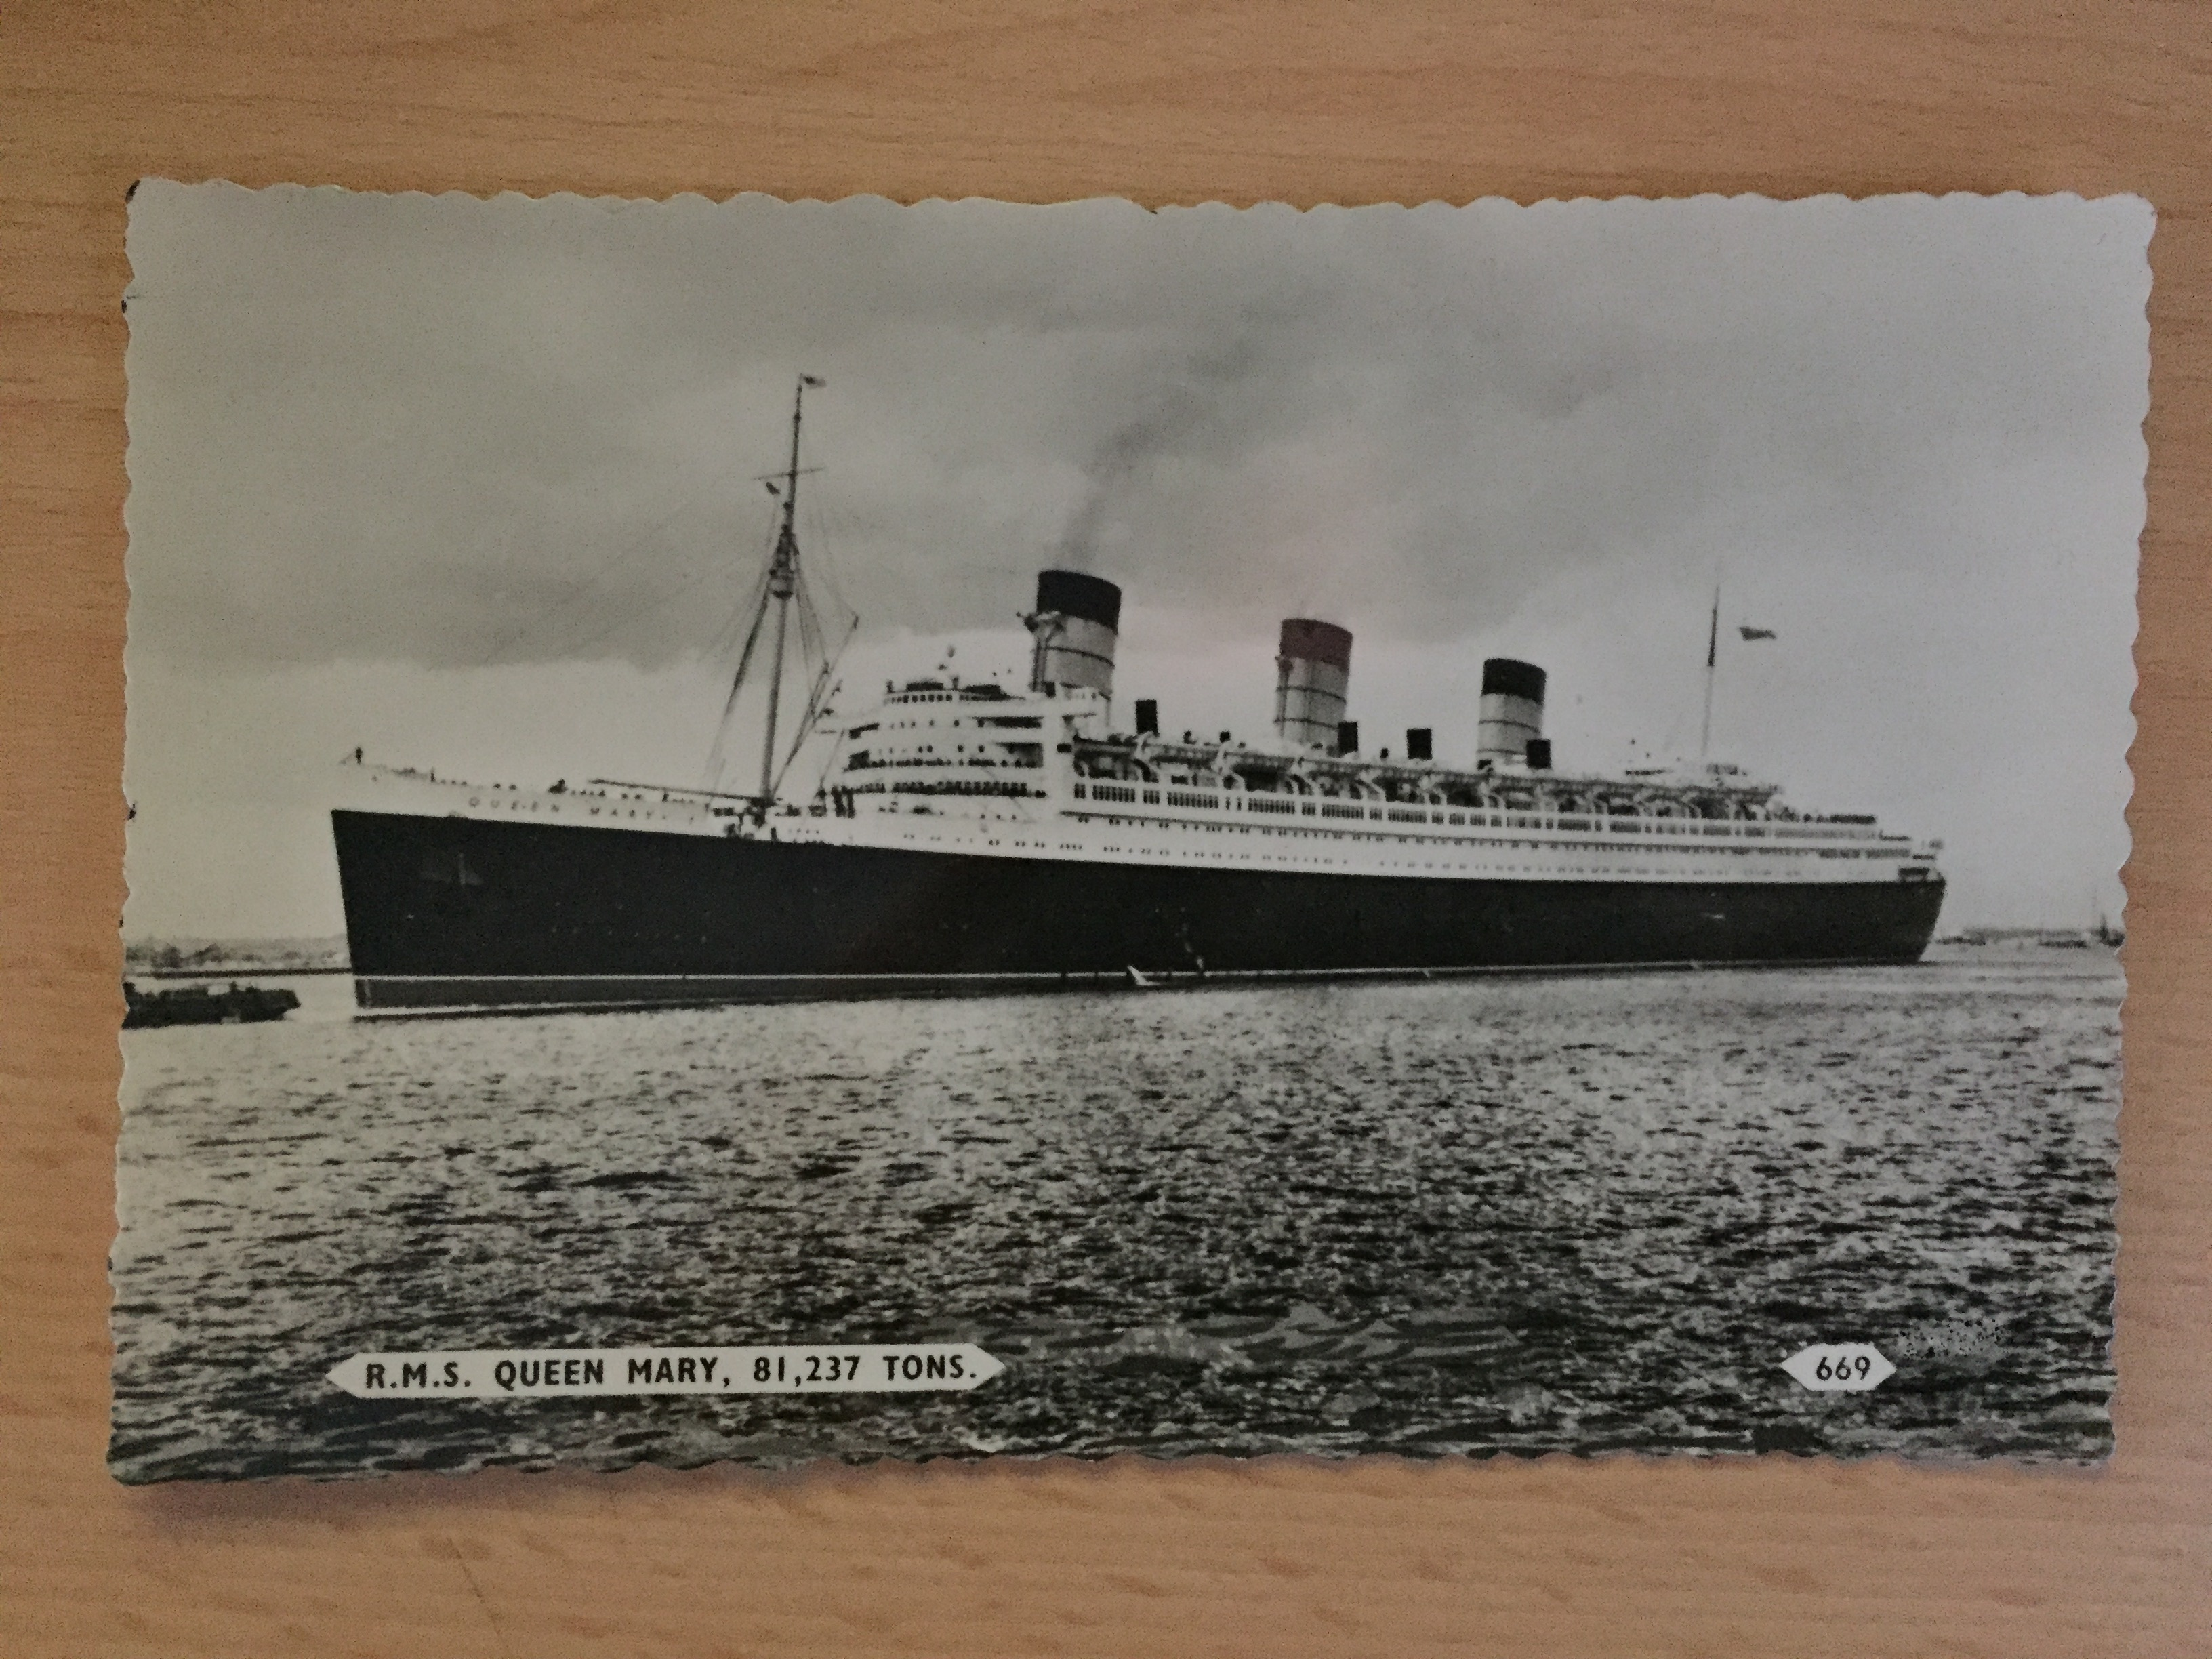 B/W EARLY POSTCARD OF THE CUNARD  LINE VESSEL THE RMS QUEEN MARY